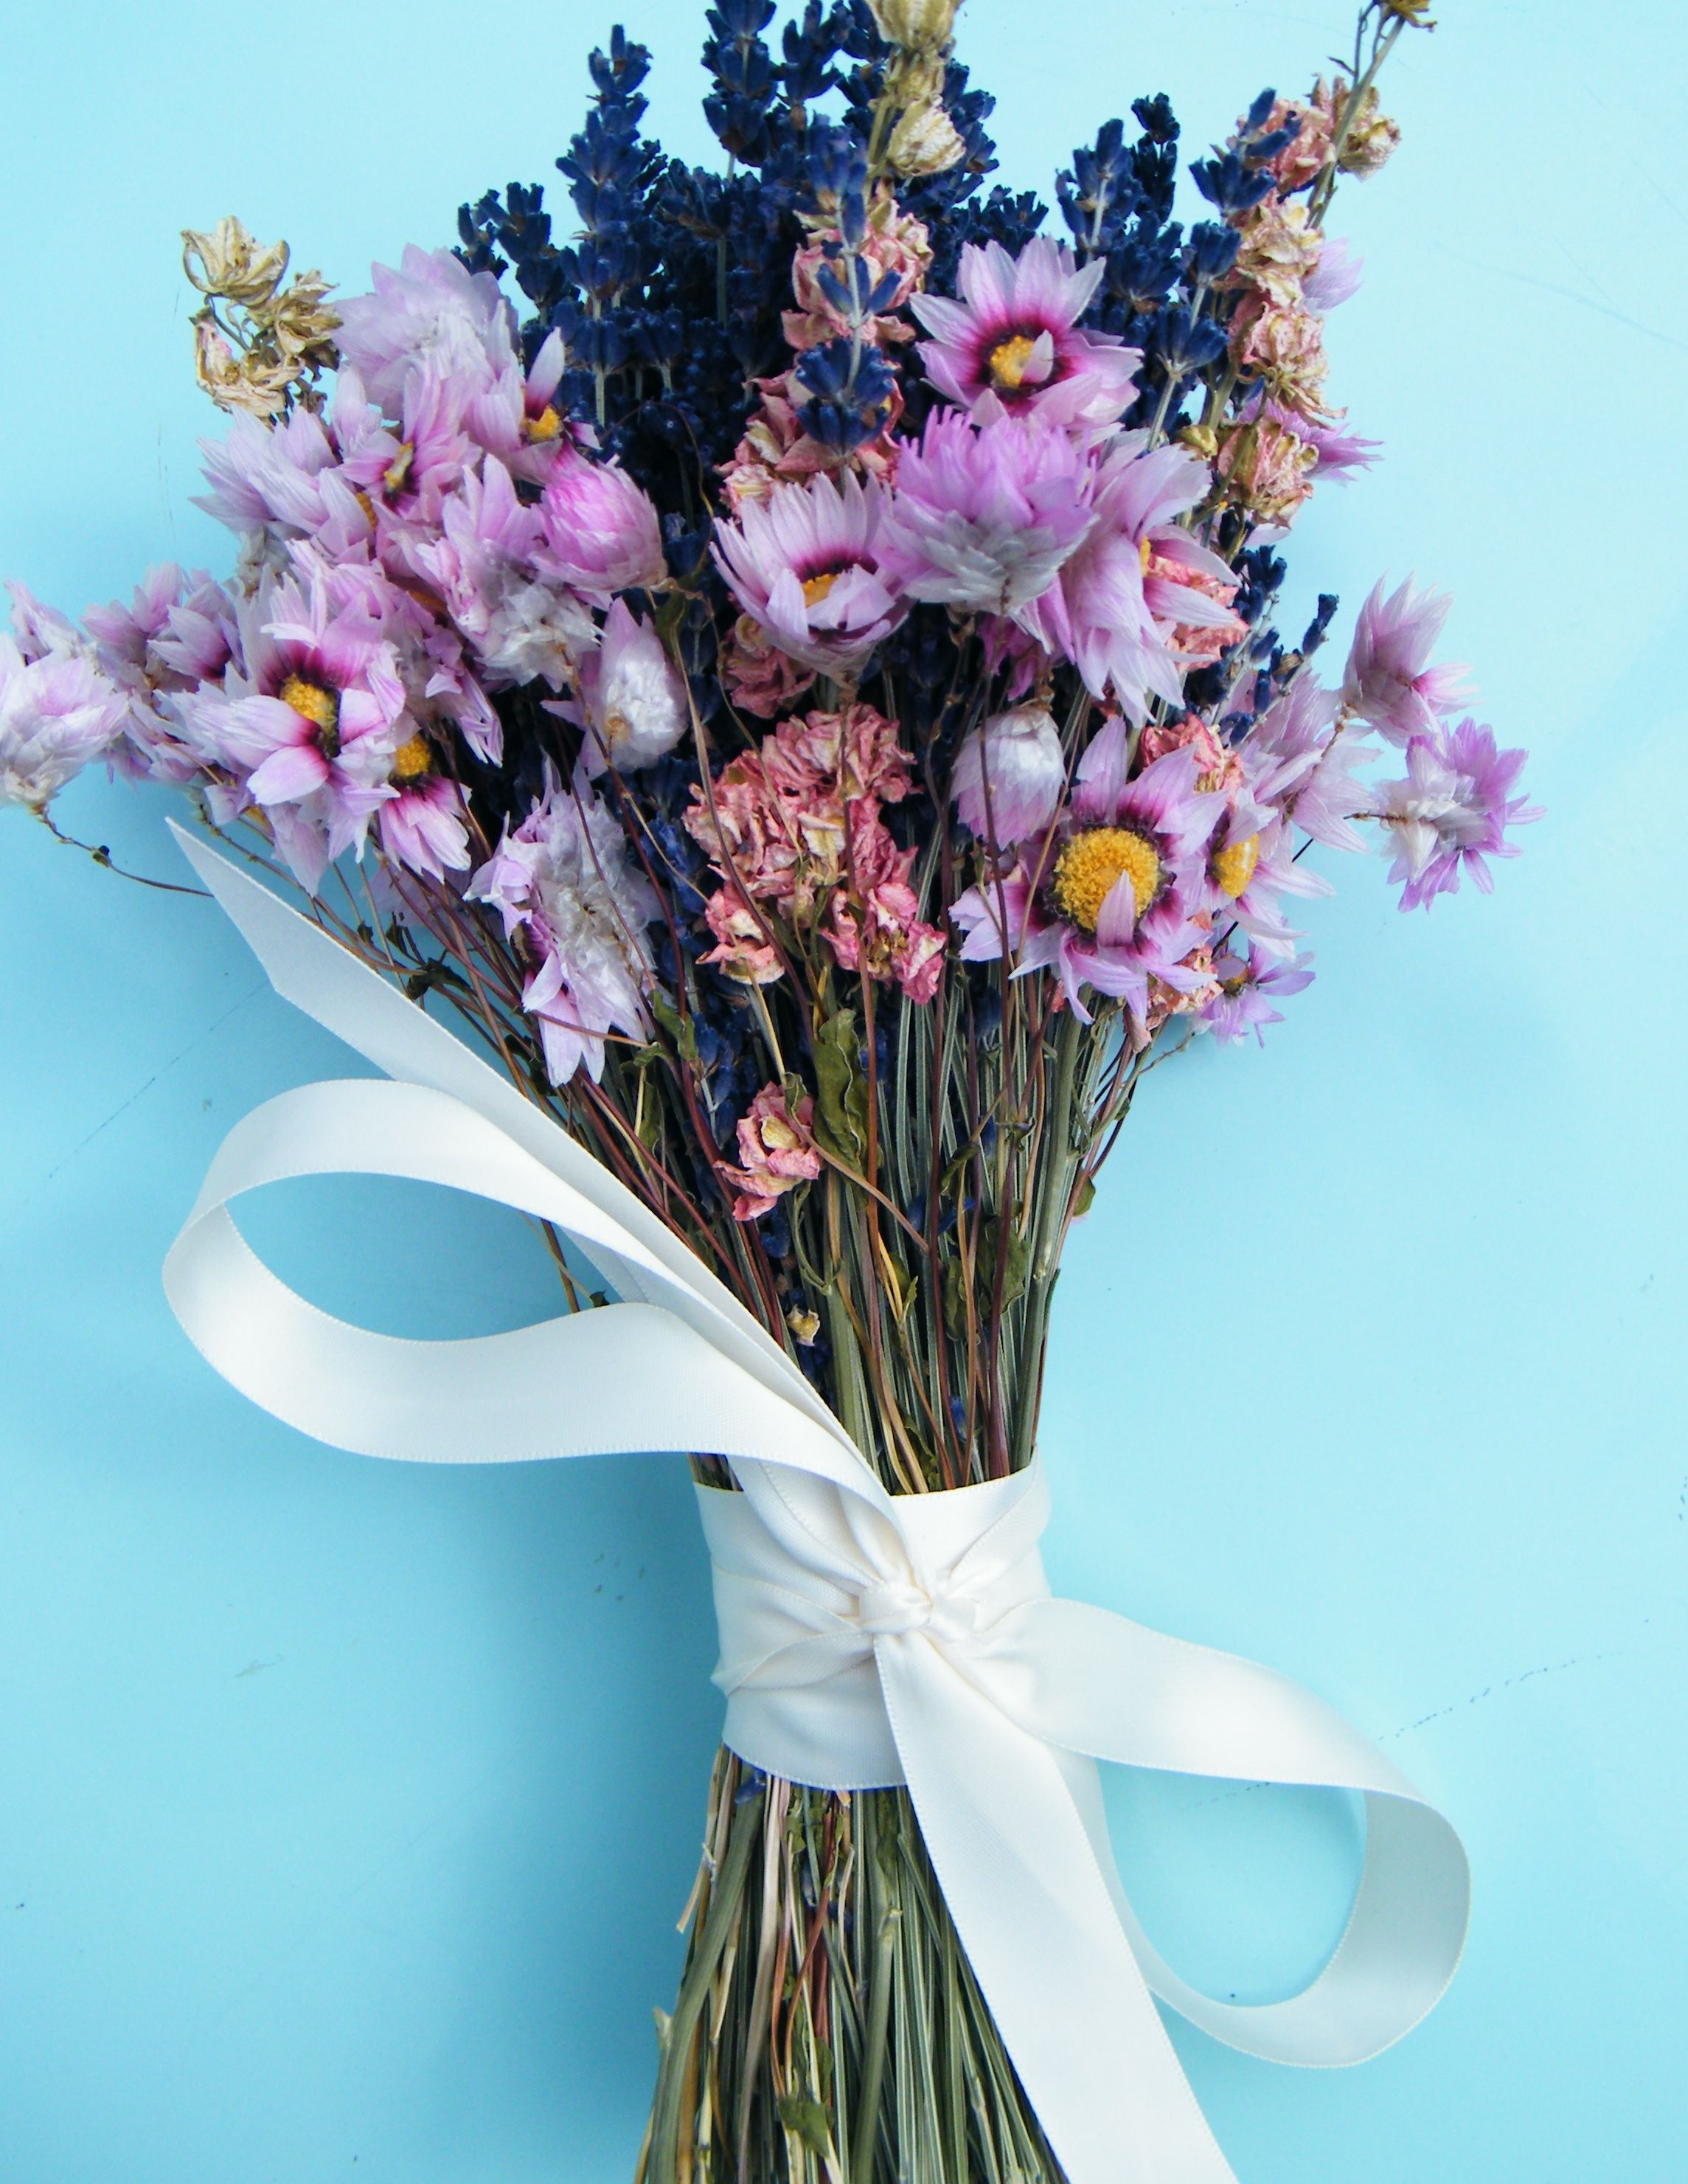 A dried flower bouquet handtied as a special order for a